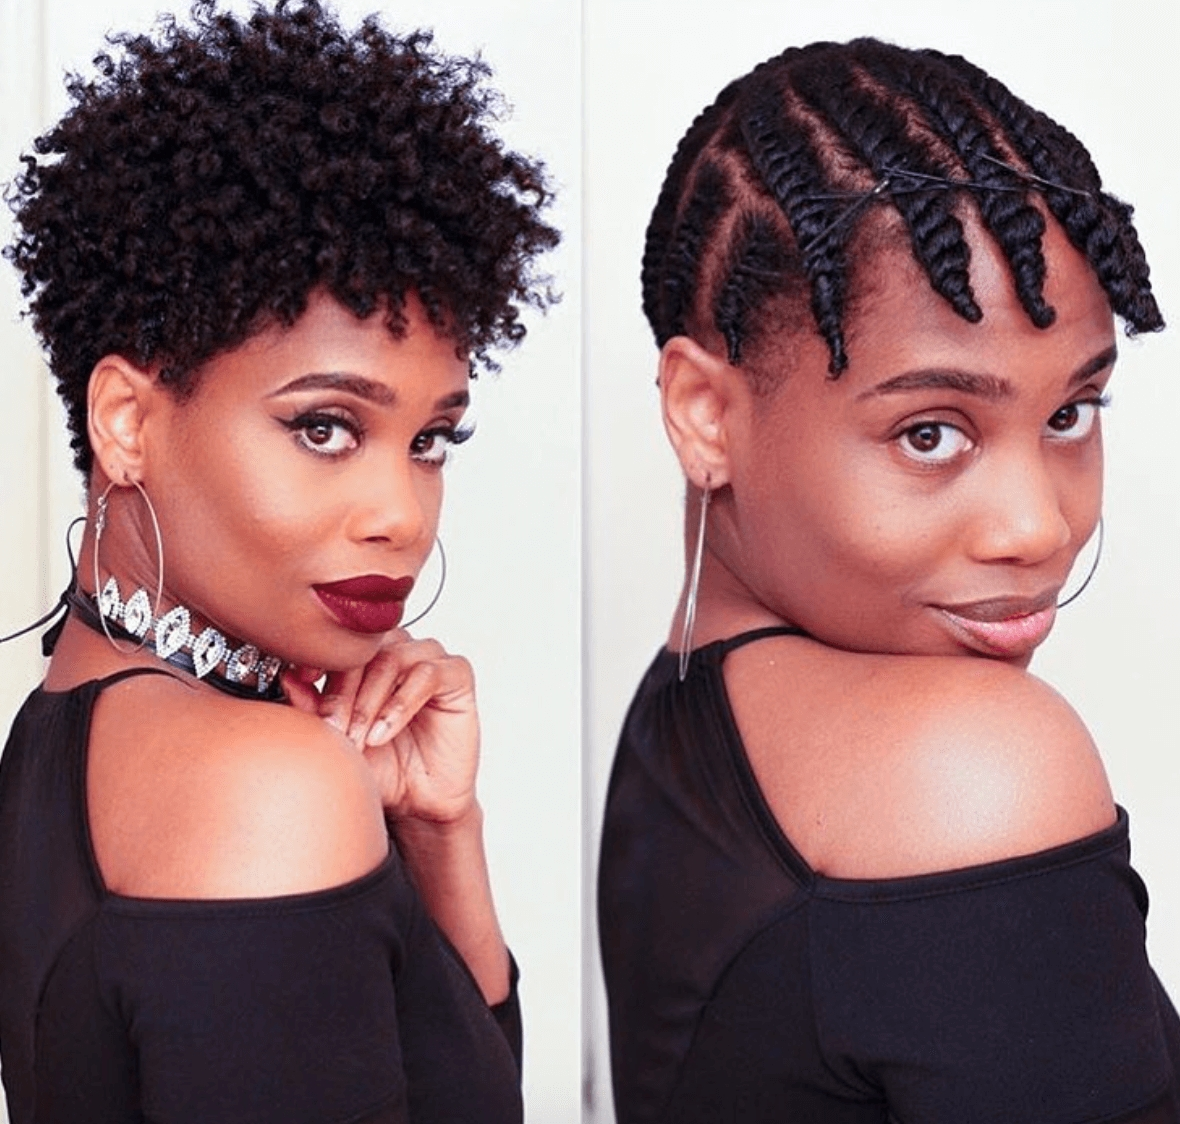 19 Stunning Quick Hairstyles For Short Natural African American Hair With Regard To Quick Updos For Short Black Hair (View 8 of 15)